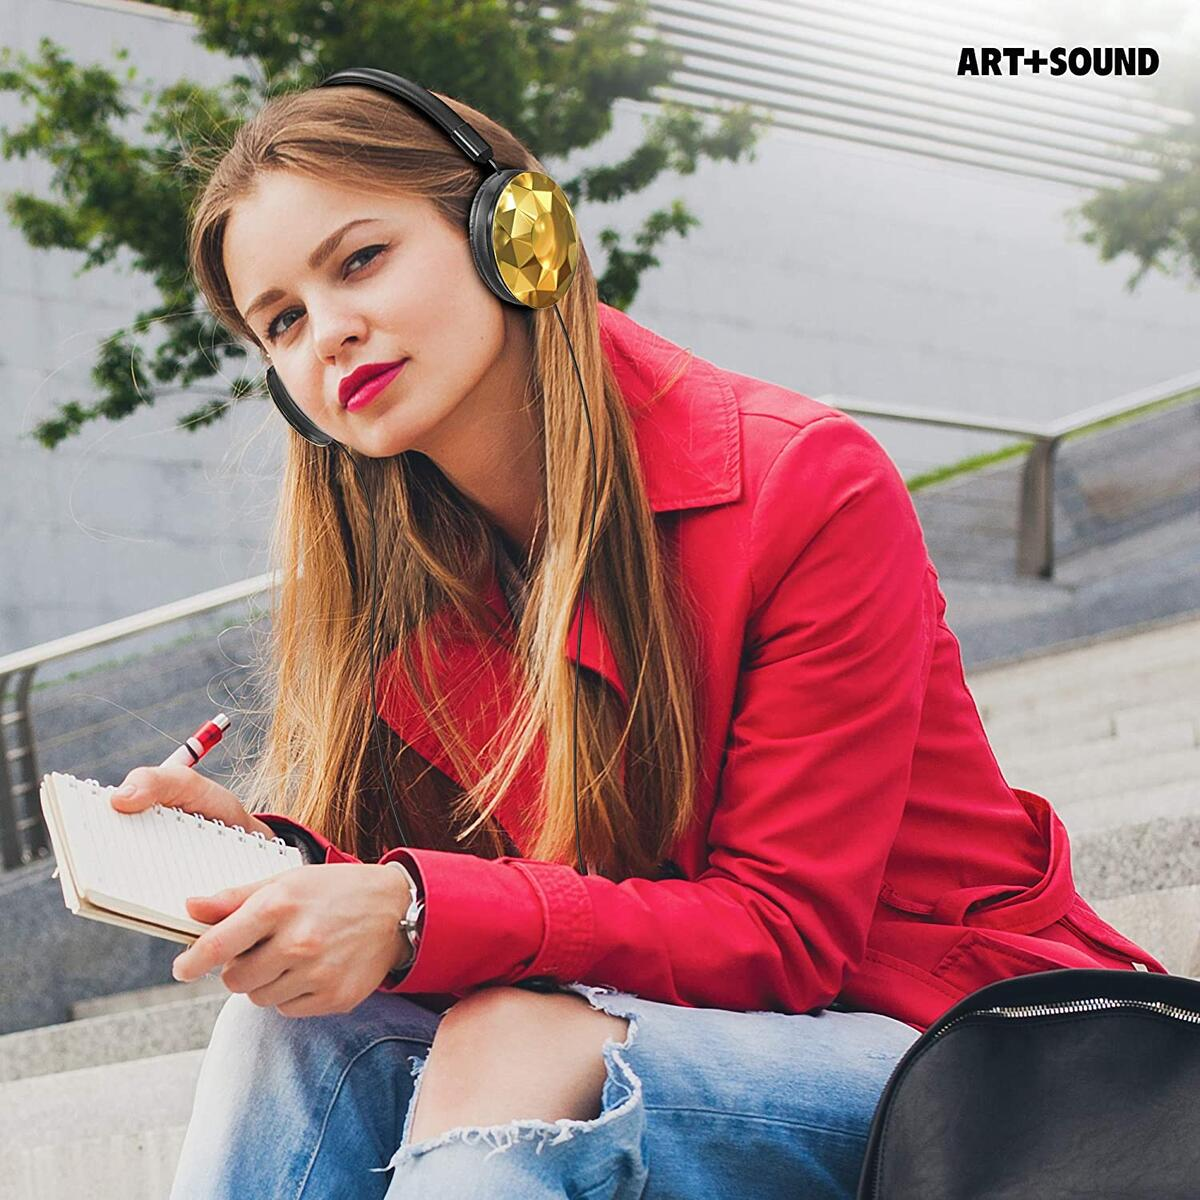 Wired Headphones by ART+SOUND, Faceted Design with Adjustable Band, Soft Cushion Pads, Foldable Design - Gold & Iridescent 2-Pack